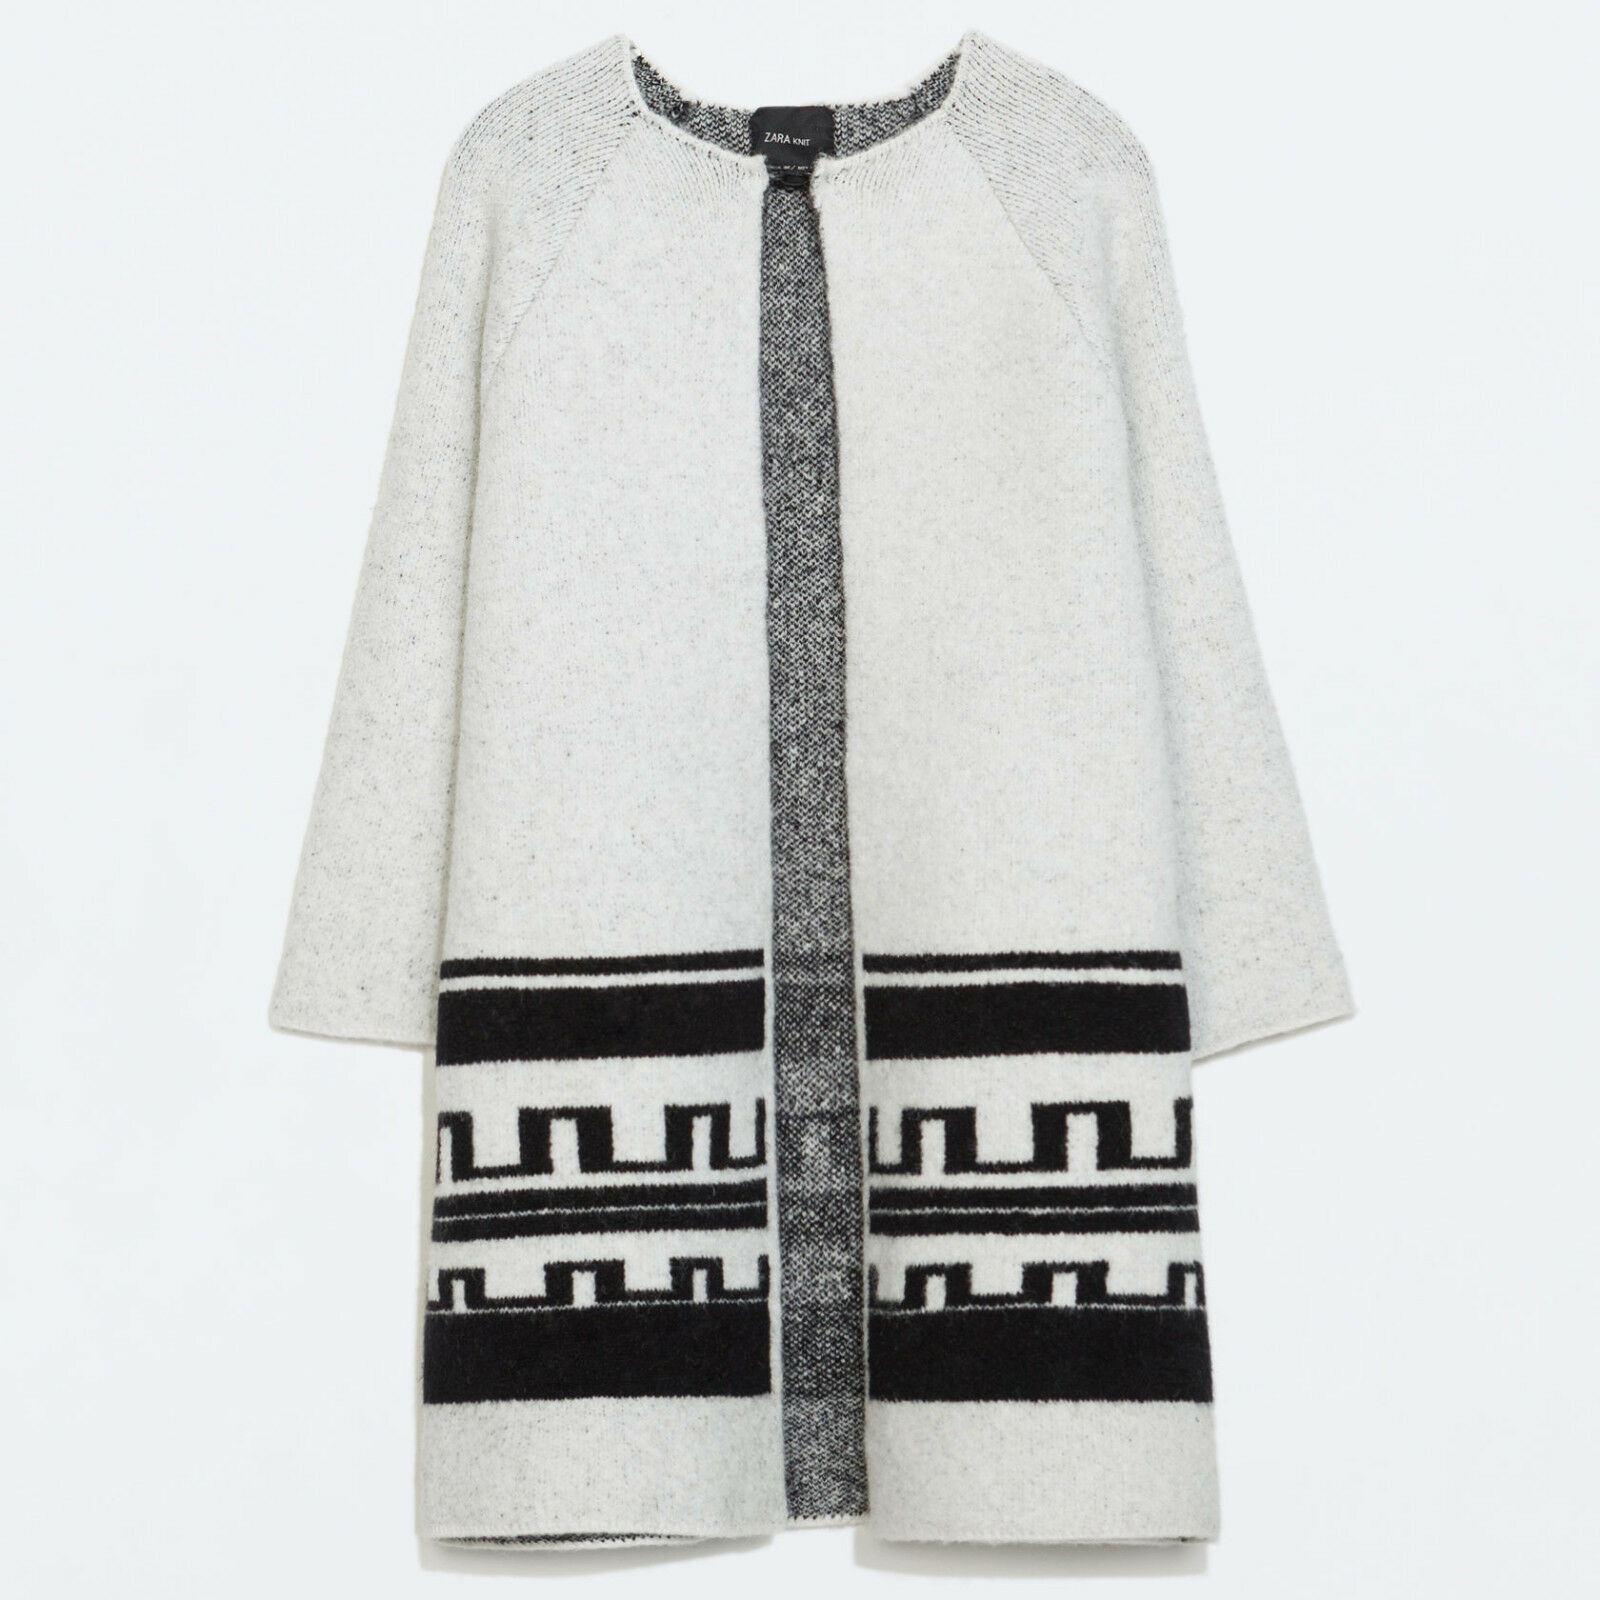 ZARA Women Ethnic Jacquard Short Coat S M Small Medium